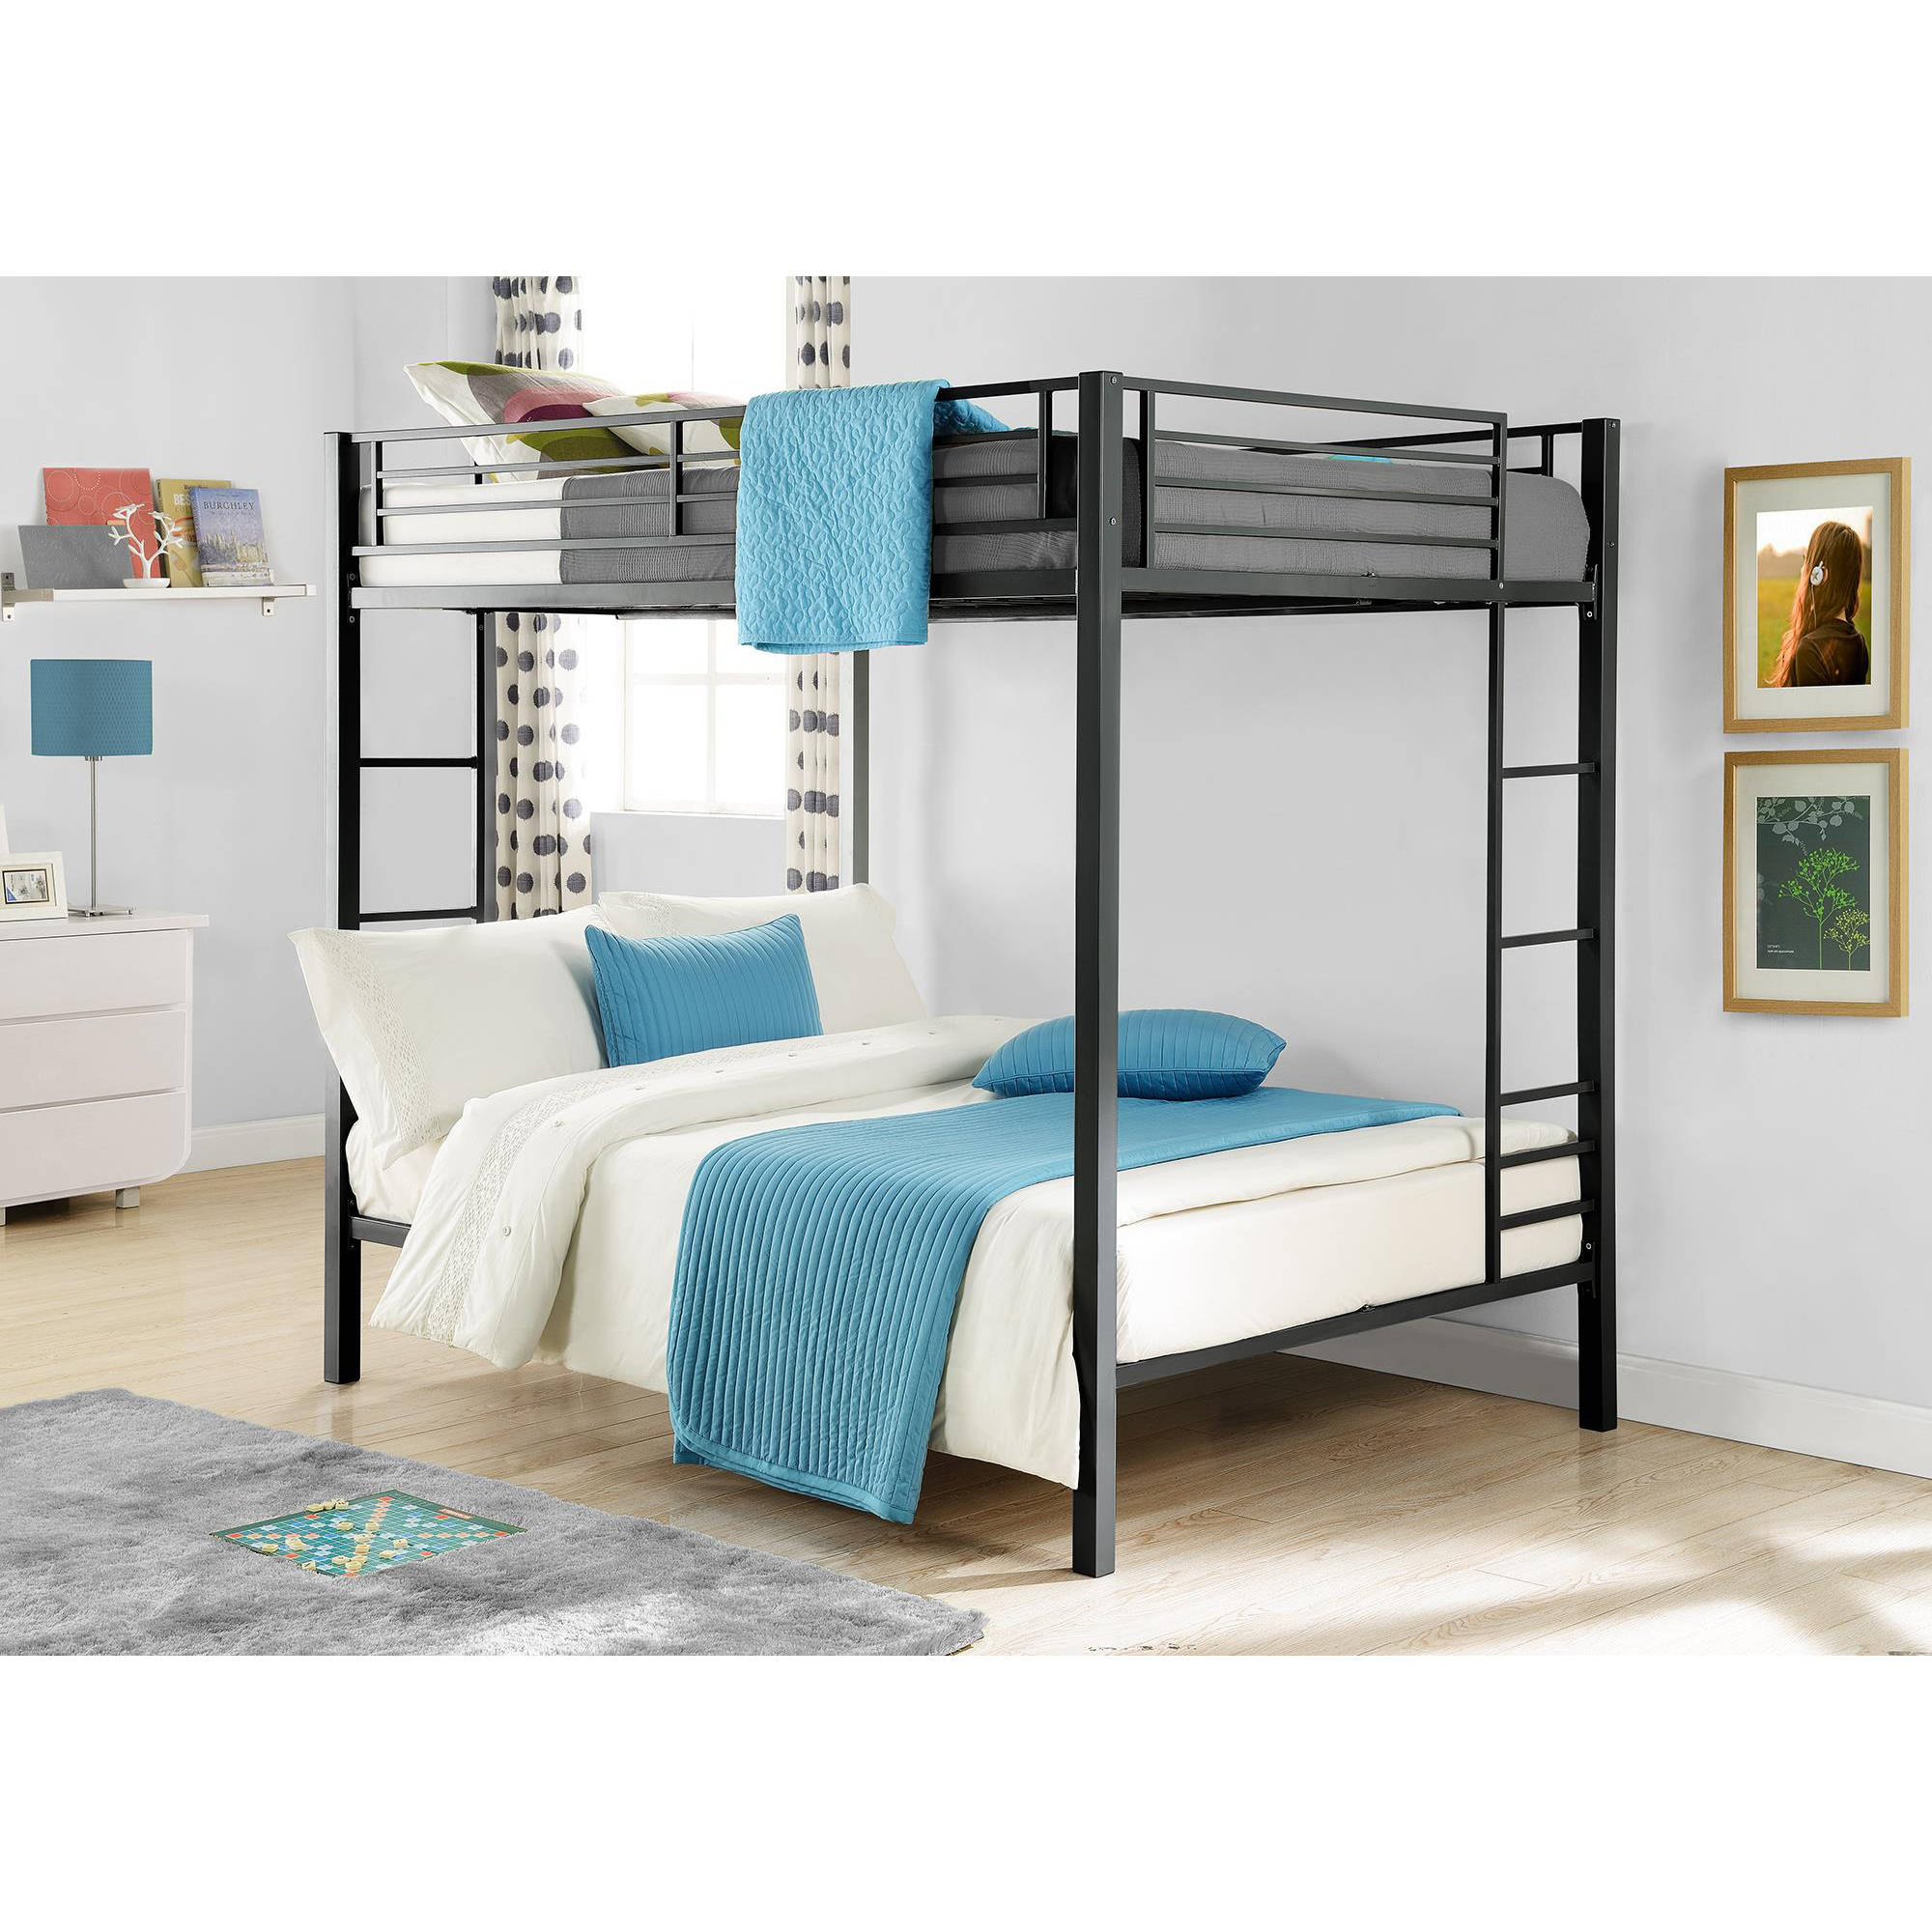 Dorel Full Over Full Metal Bunk Bed Multiple Finishes Walmart